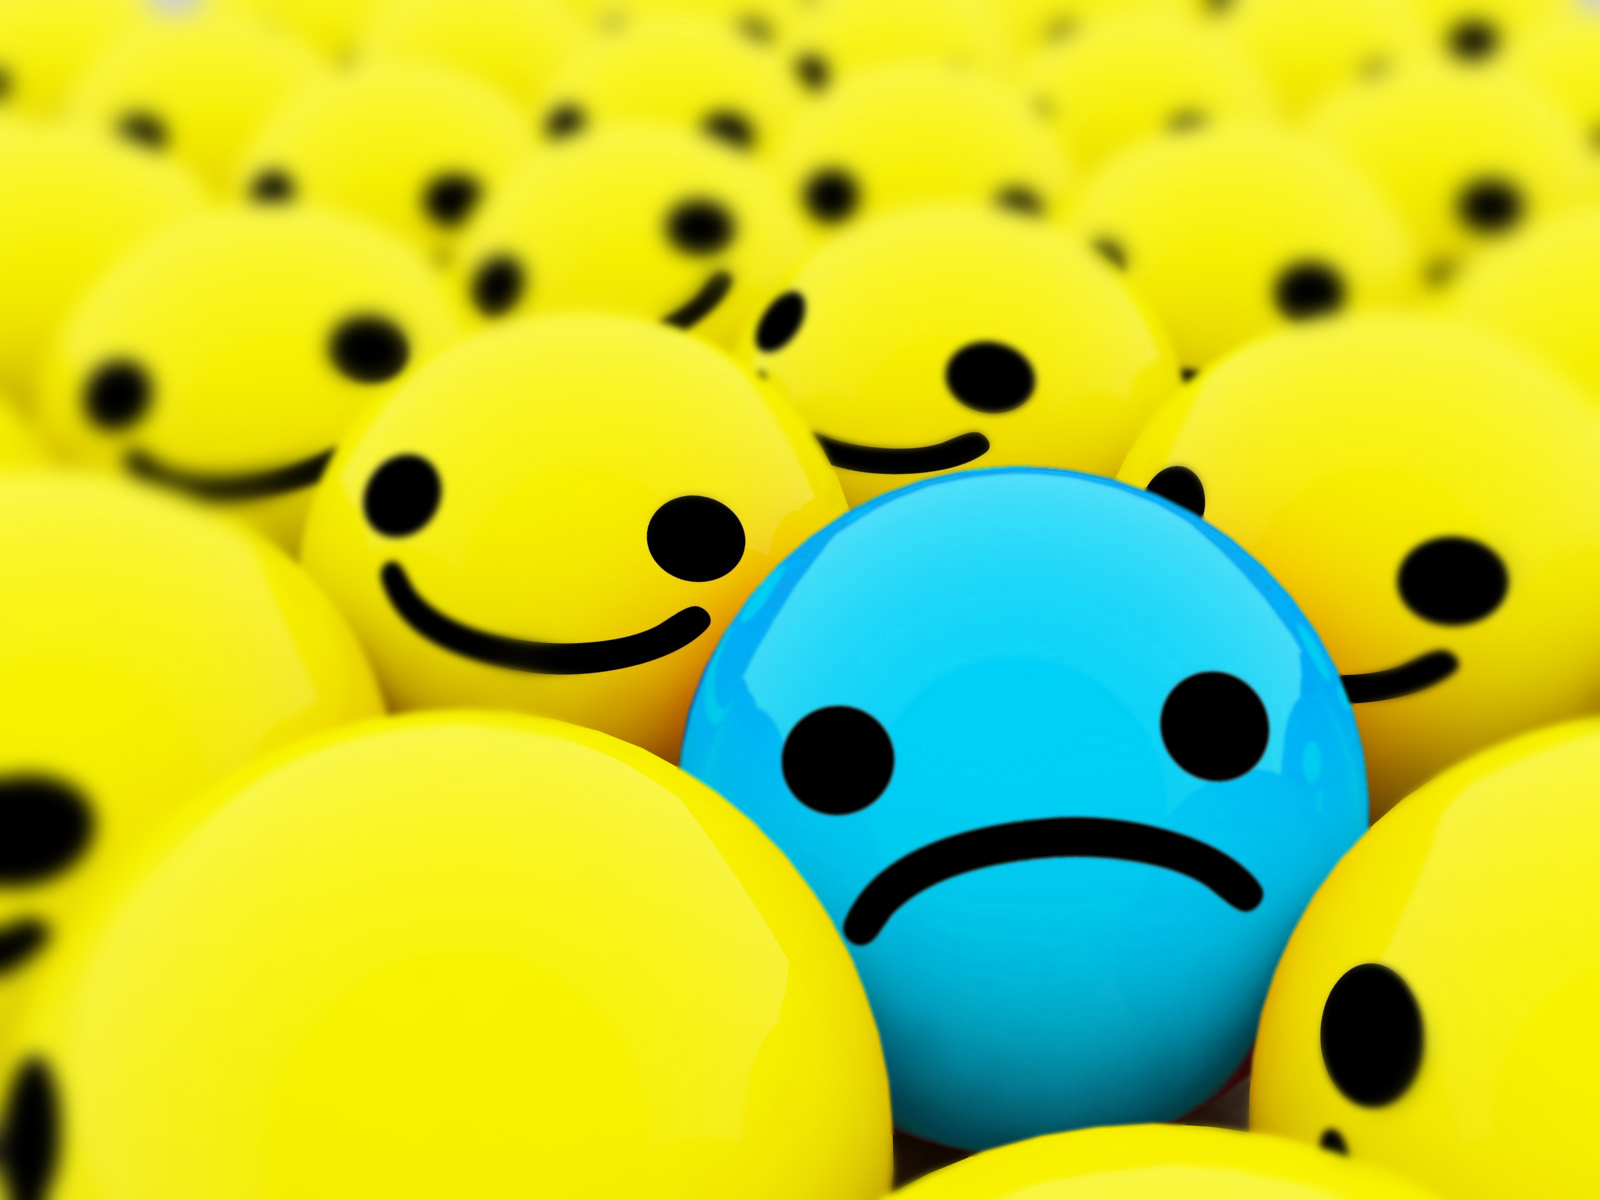 Smiley Faces Desktop Backgrounds  Wallpaper  1600x1200